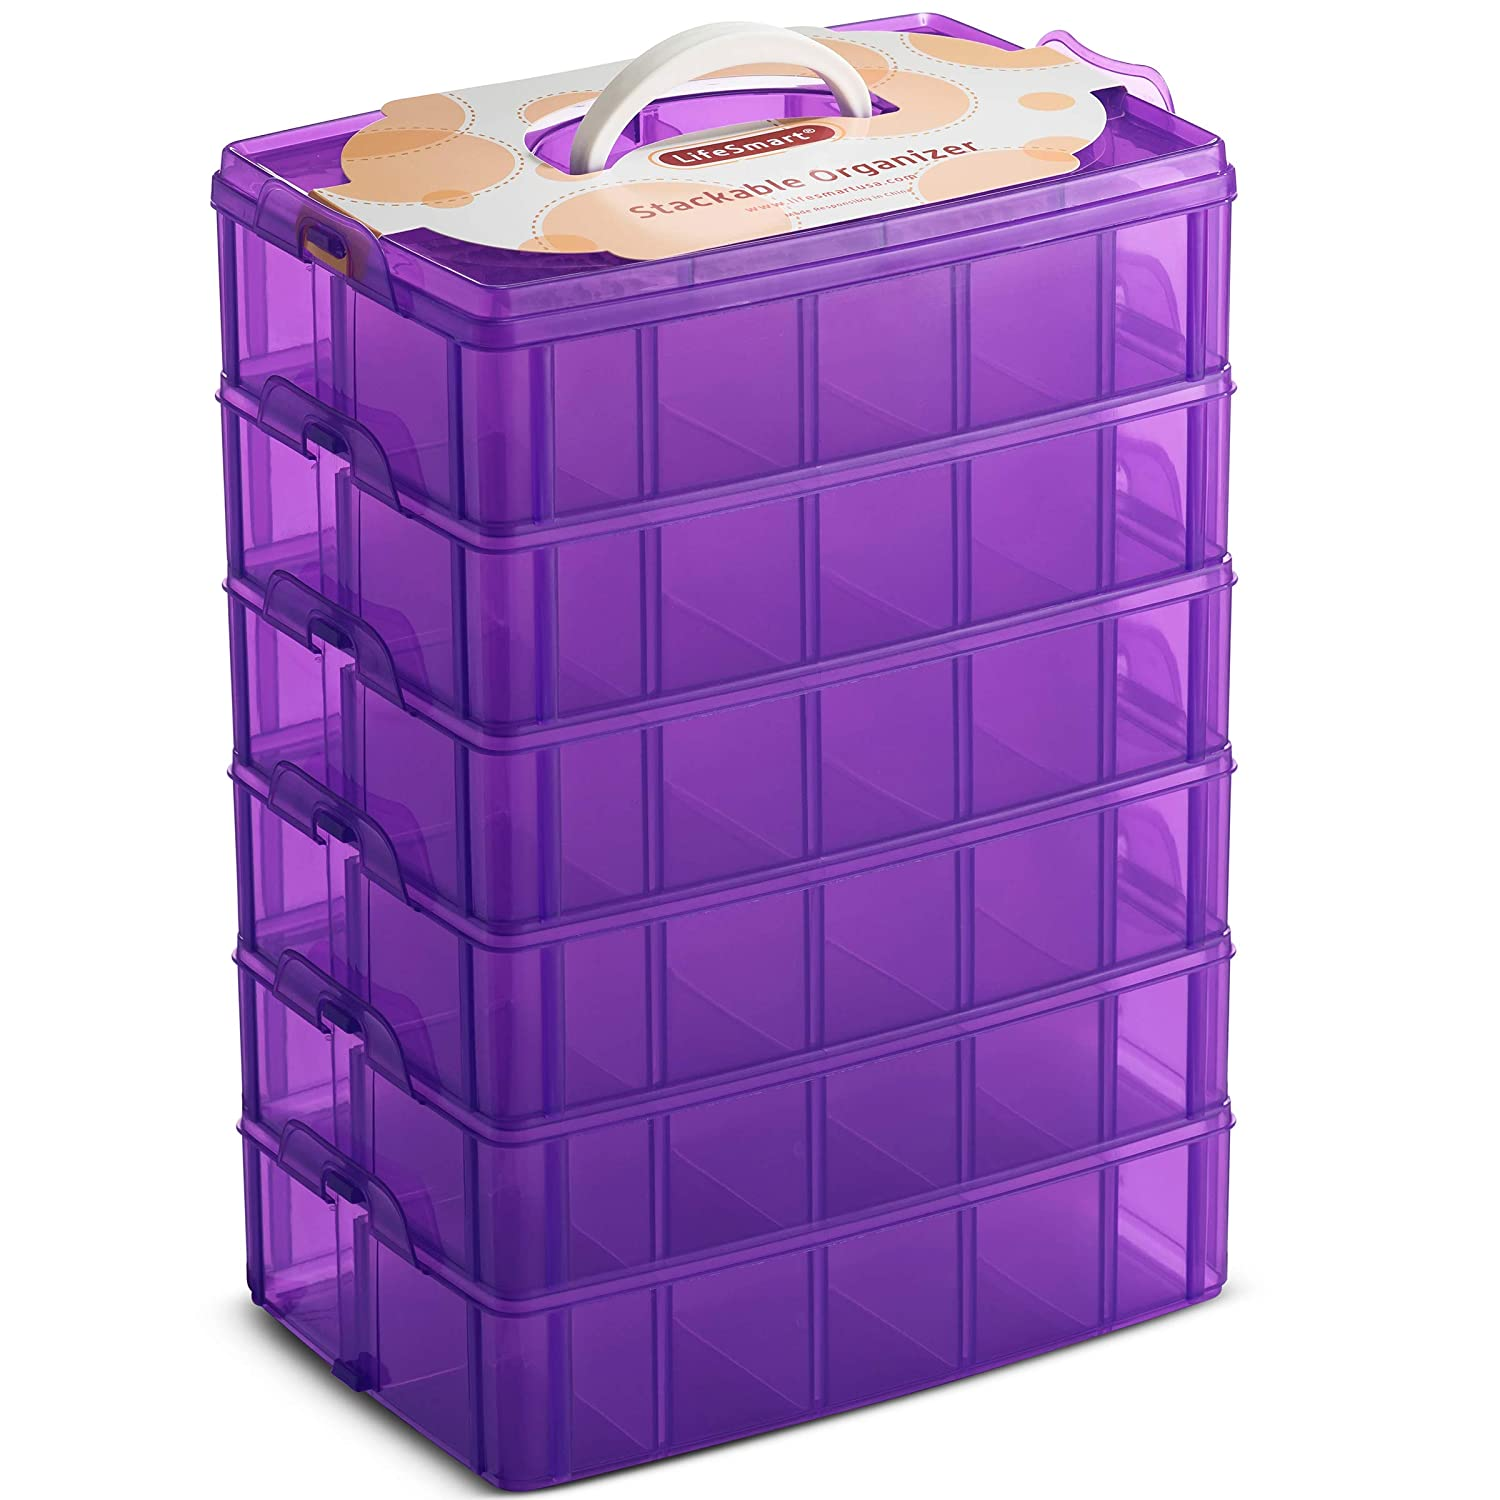 And More! Lego Dimensions Shopkins LifeSmart USA Stackable Toy Storage Unit Purple 50 Adjustable Compartments Littlest Pet Shop Arts and Crafts Store More LOL Dolls